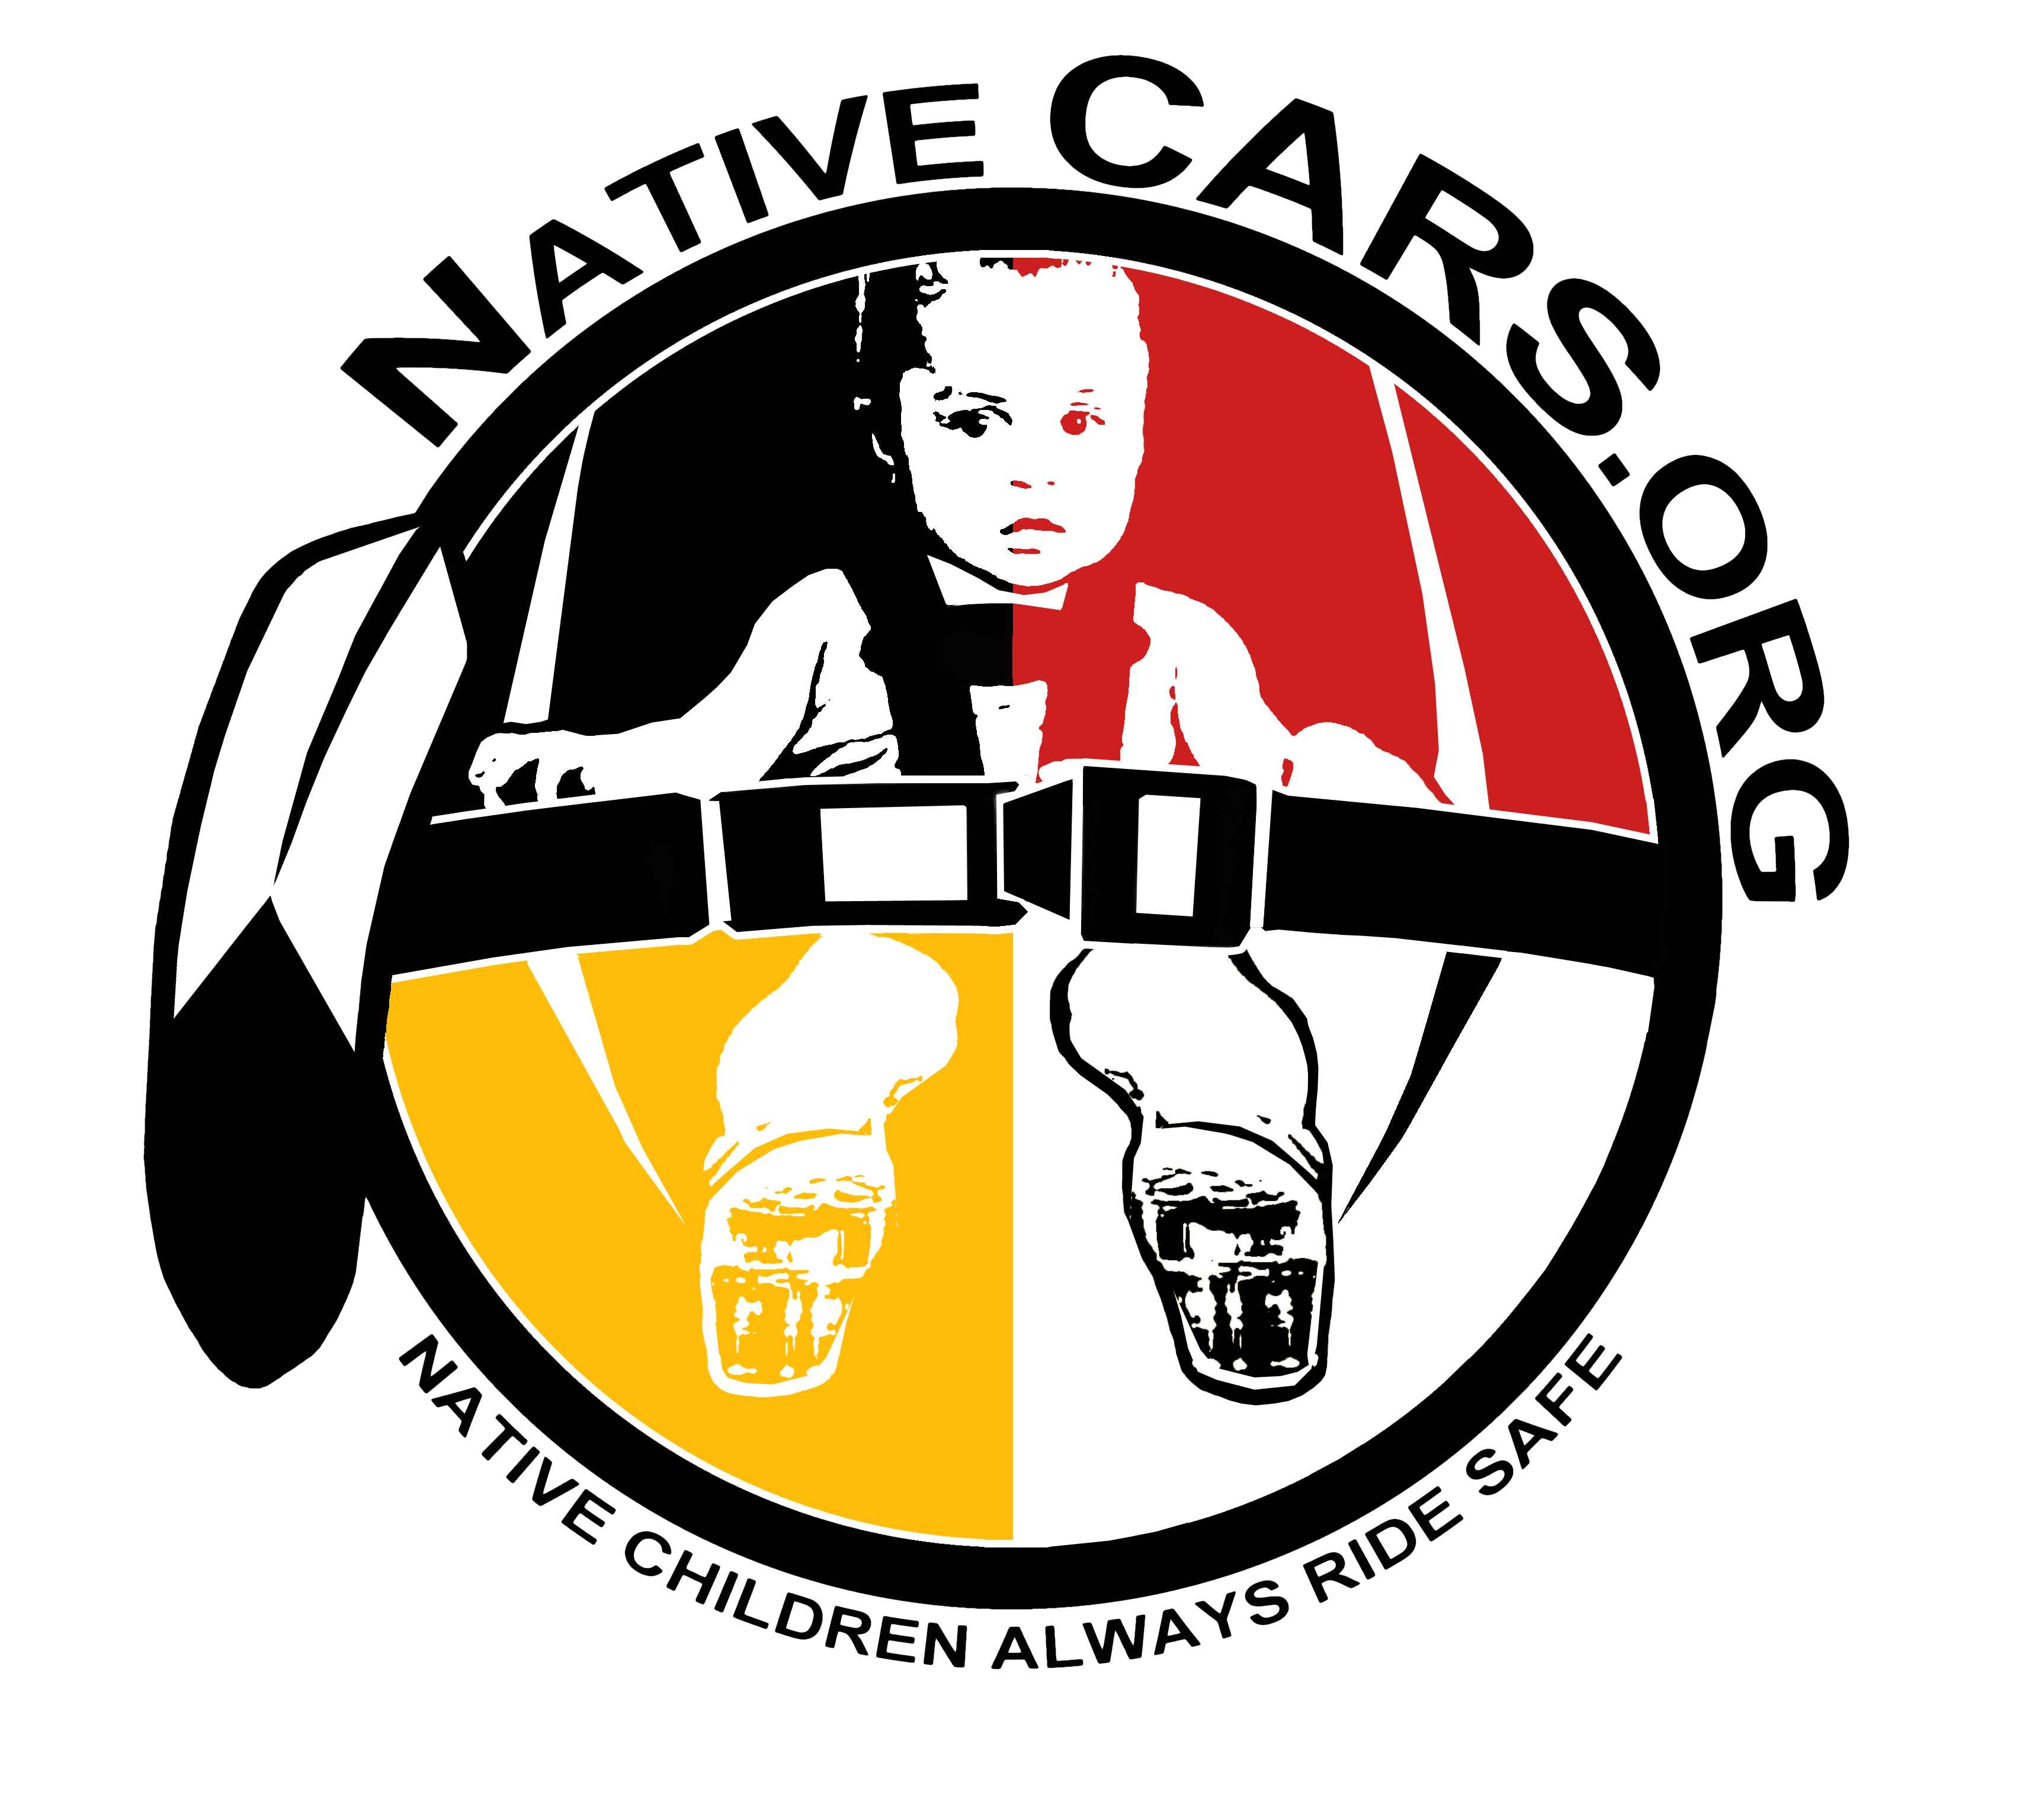 Native Cars Web Site